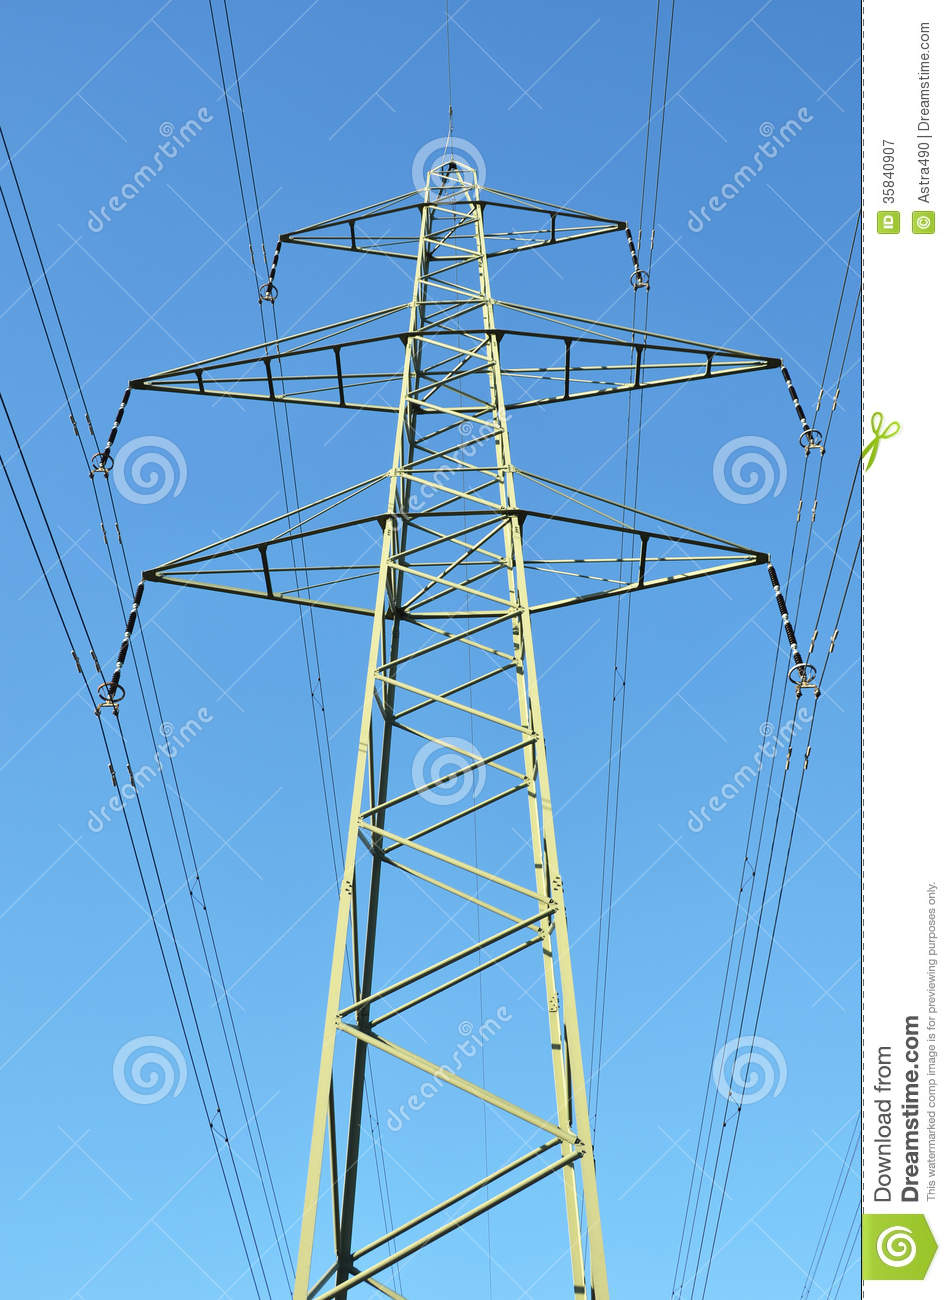 High Voltage Electrical Lines : High voltage power lines royalty free stock photography